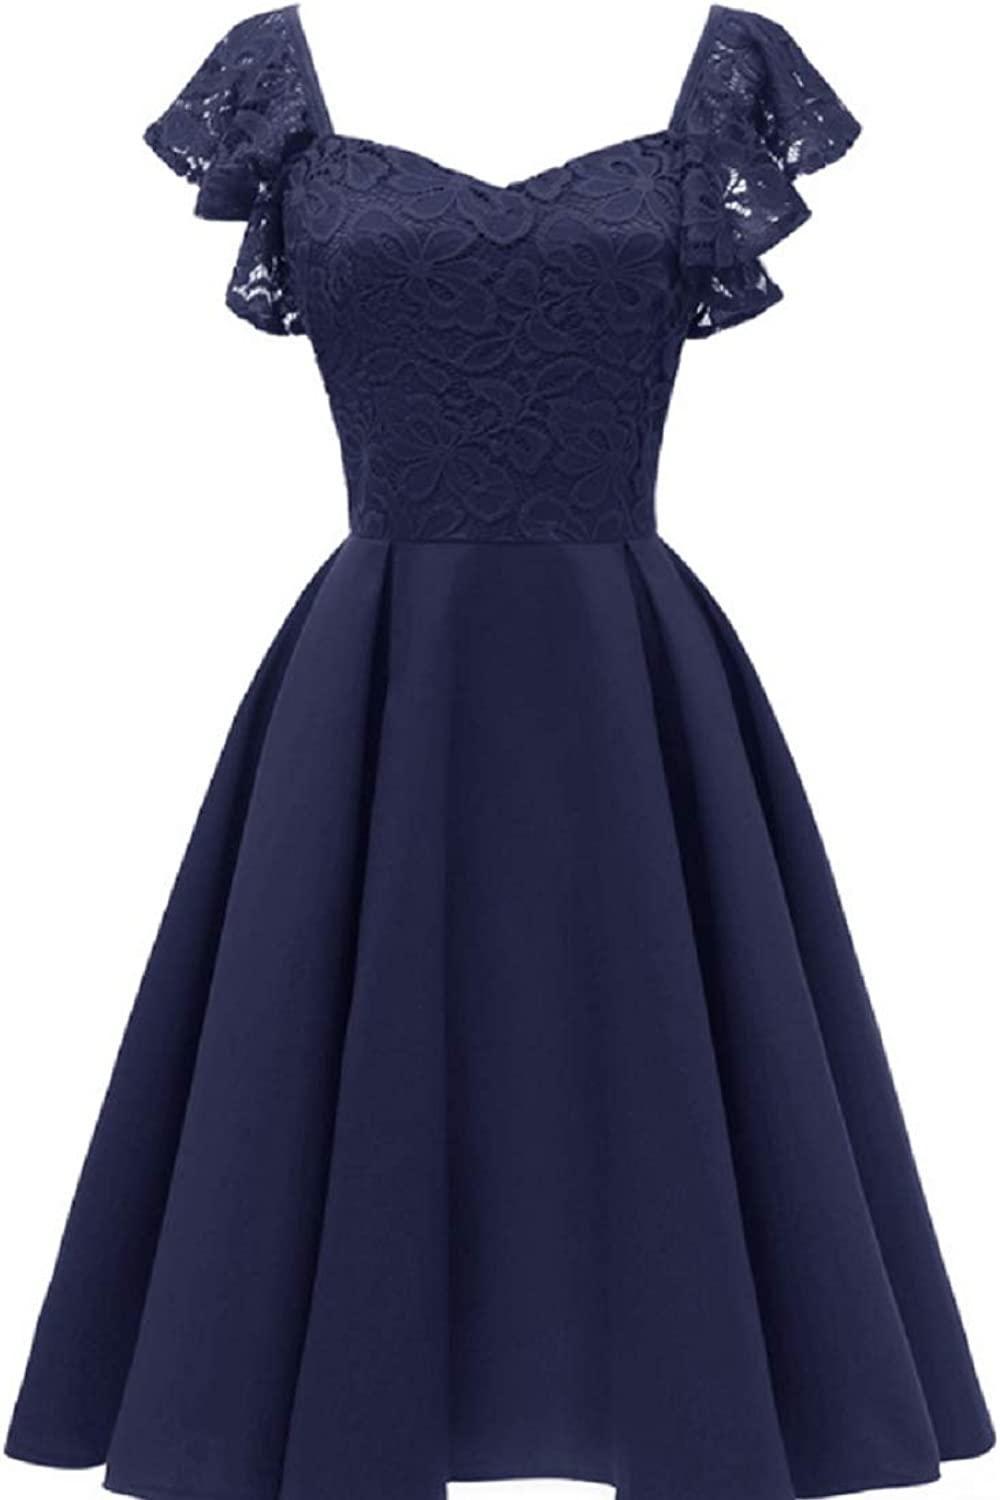 Women's Vintage Temperament Lace Butterfly Sleeve Cocktail Party Dress Bridesmaid Evening Dress